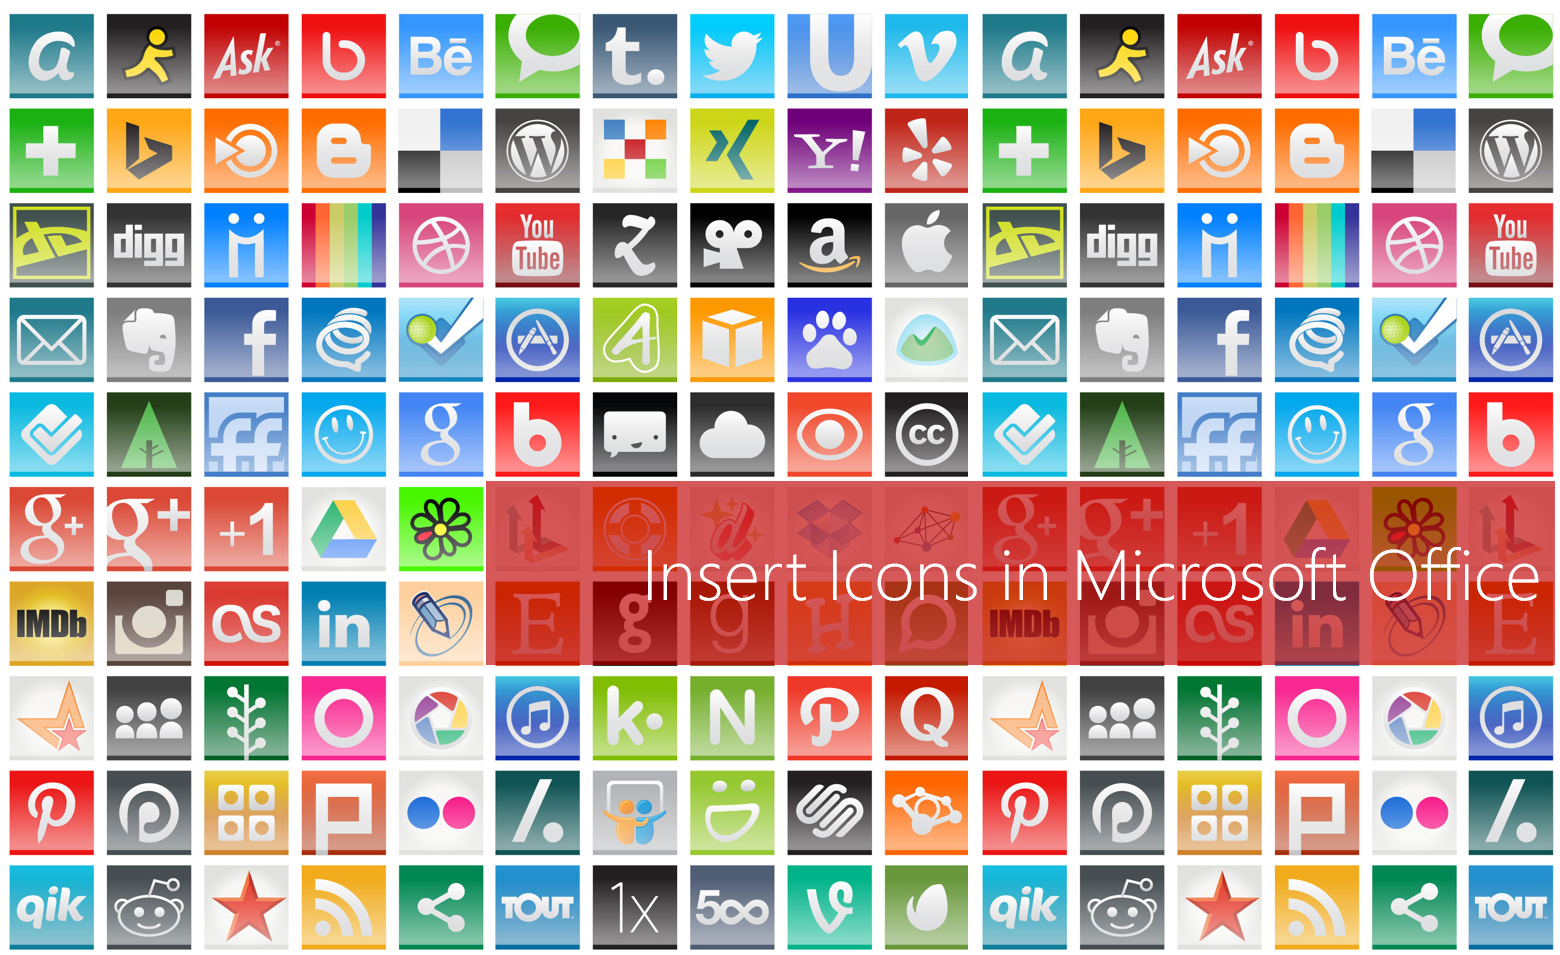 Microsoft 365 Day 38 Insert Svg Icons In Microsoft Office Tracy Van Der Schyff